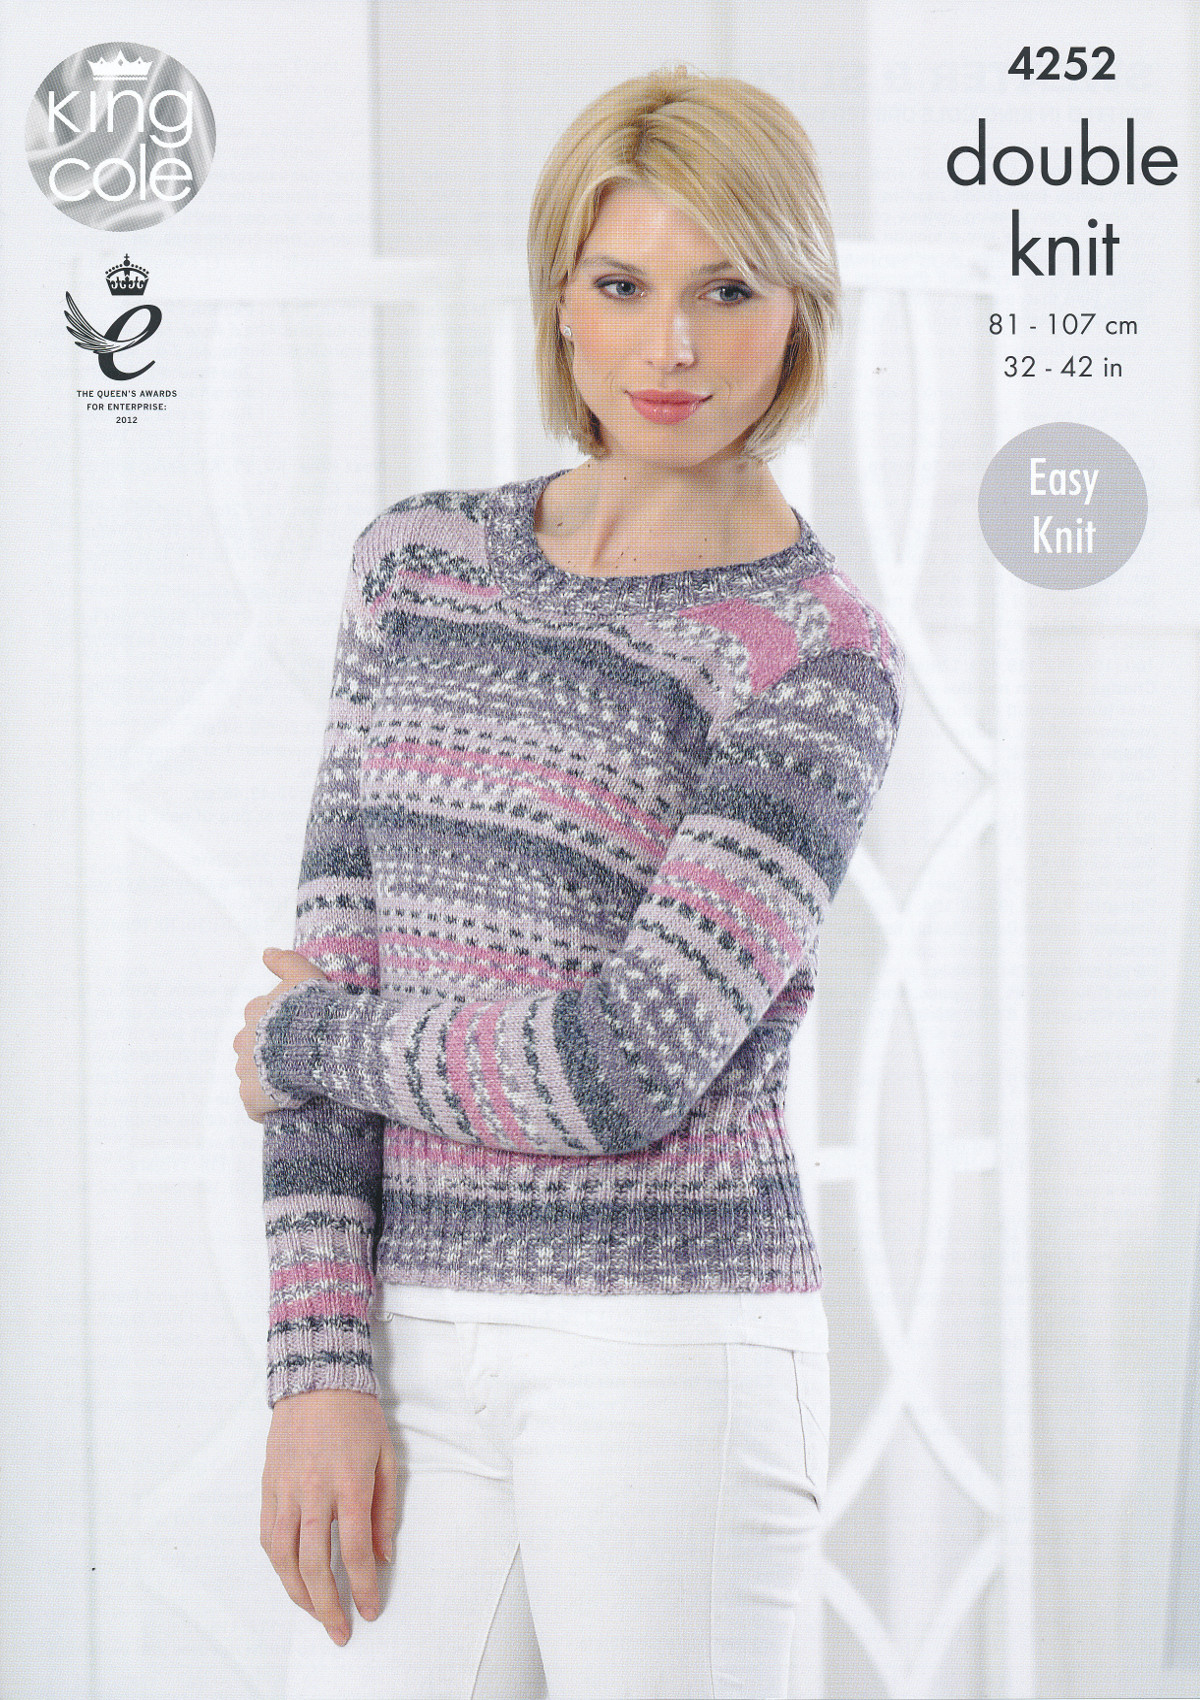 Ladies Double Knit DK Pattern King Cole Easy Knit Ribbed Pullover Sweater 425...